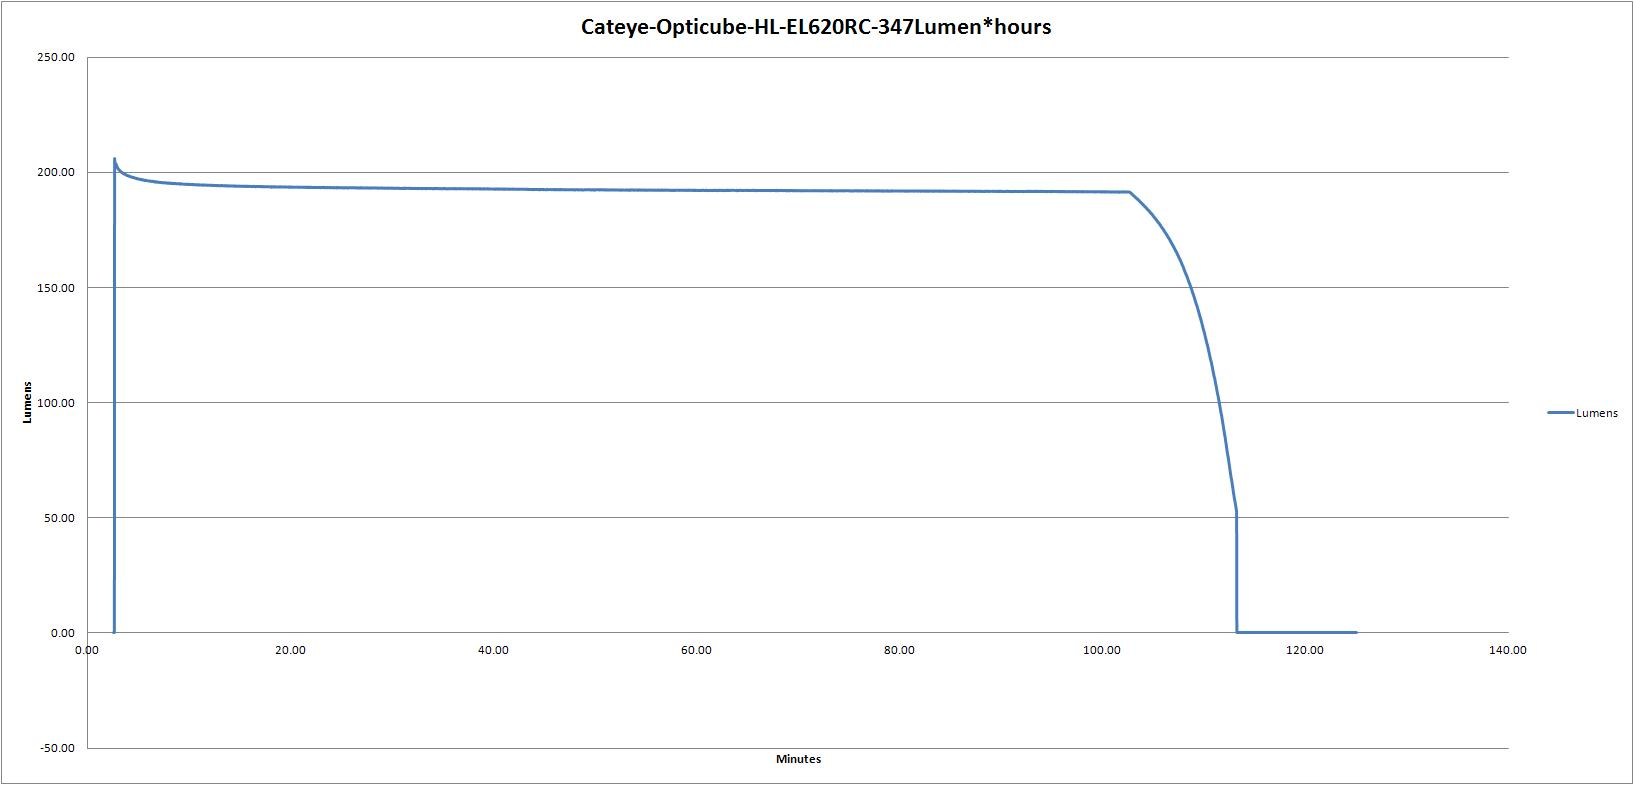 Cateye-Opticube-HL-EL620RC-0